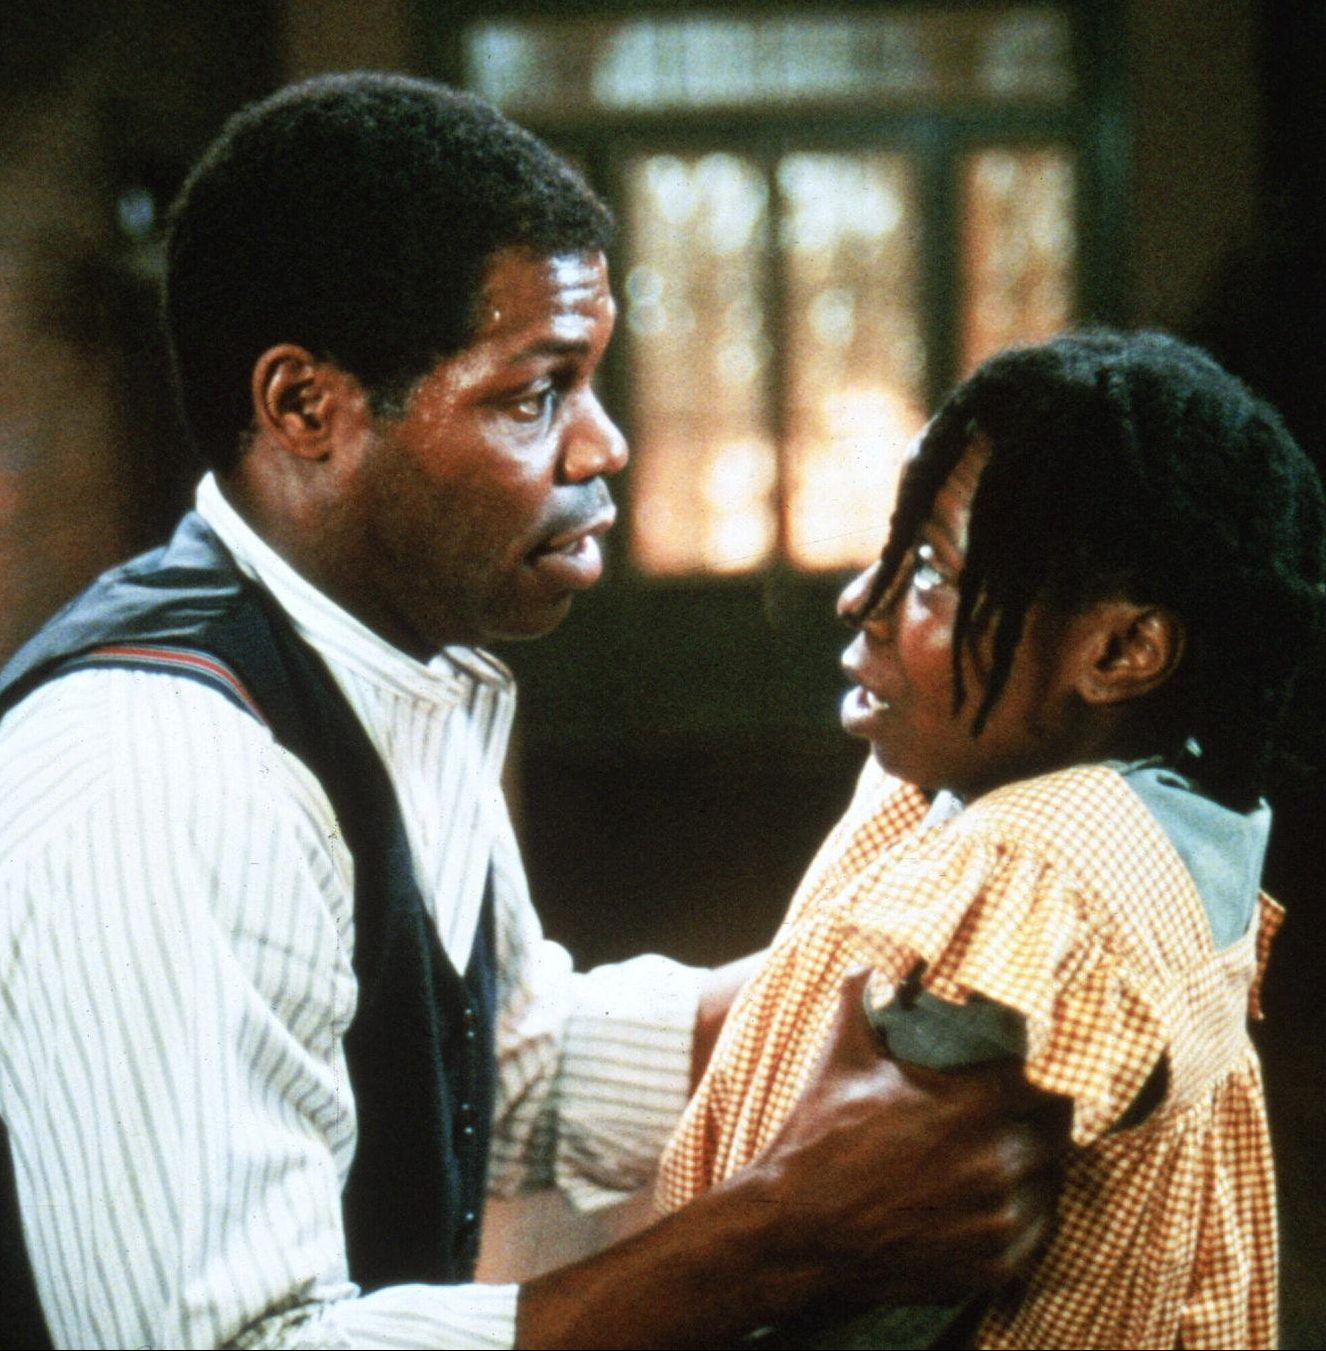 whoopi goldberg and danny glover in the color purple e1582545635272 20 Barnstorming Facts You Never Knew About Witness